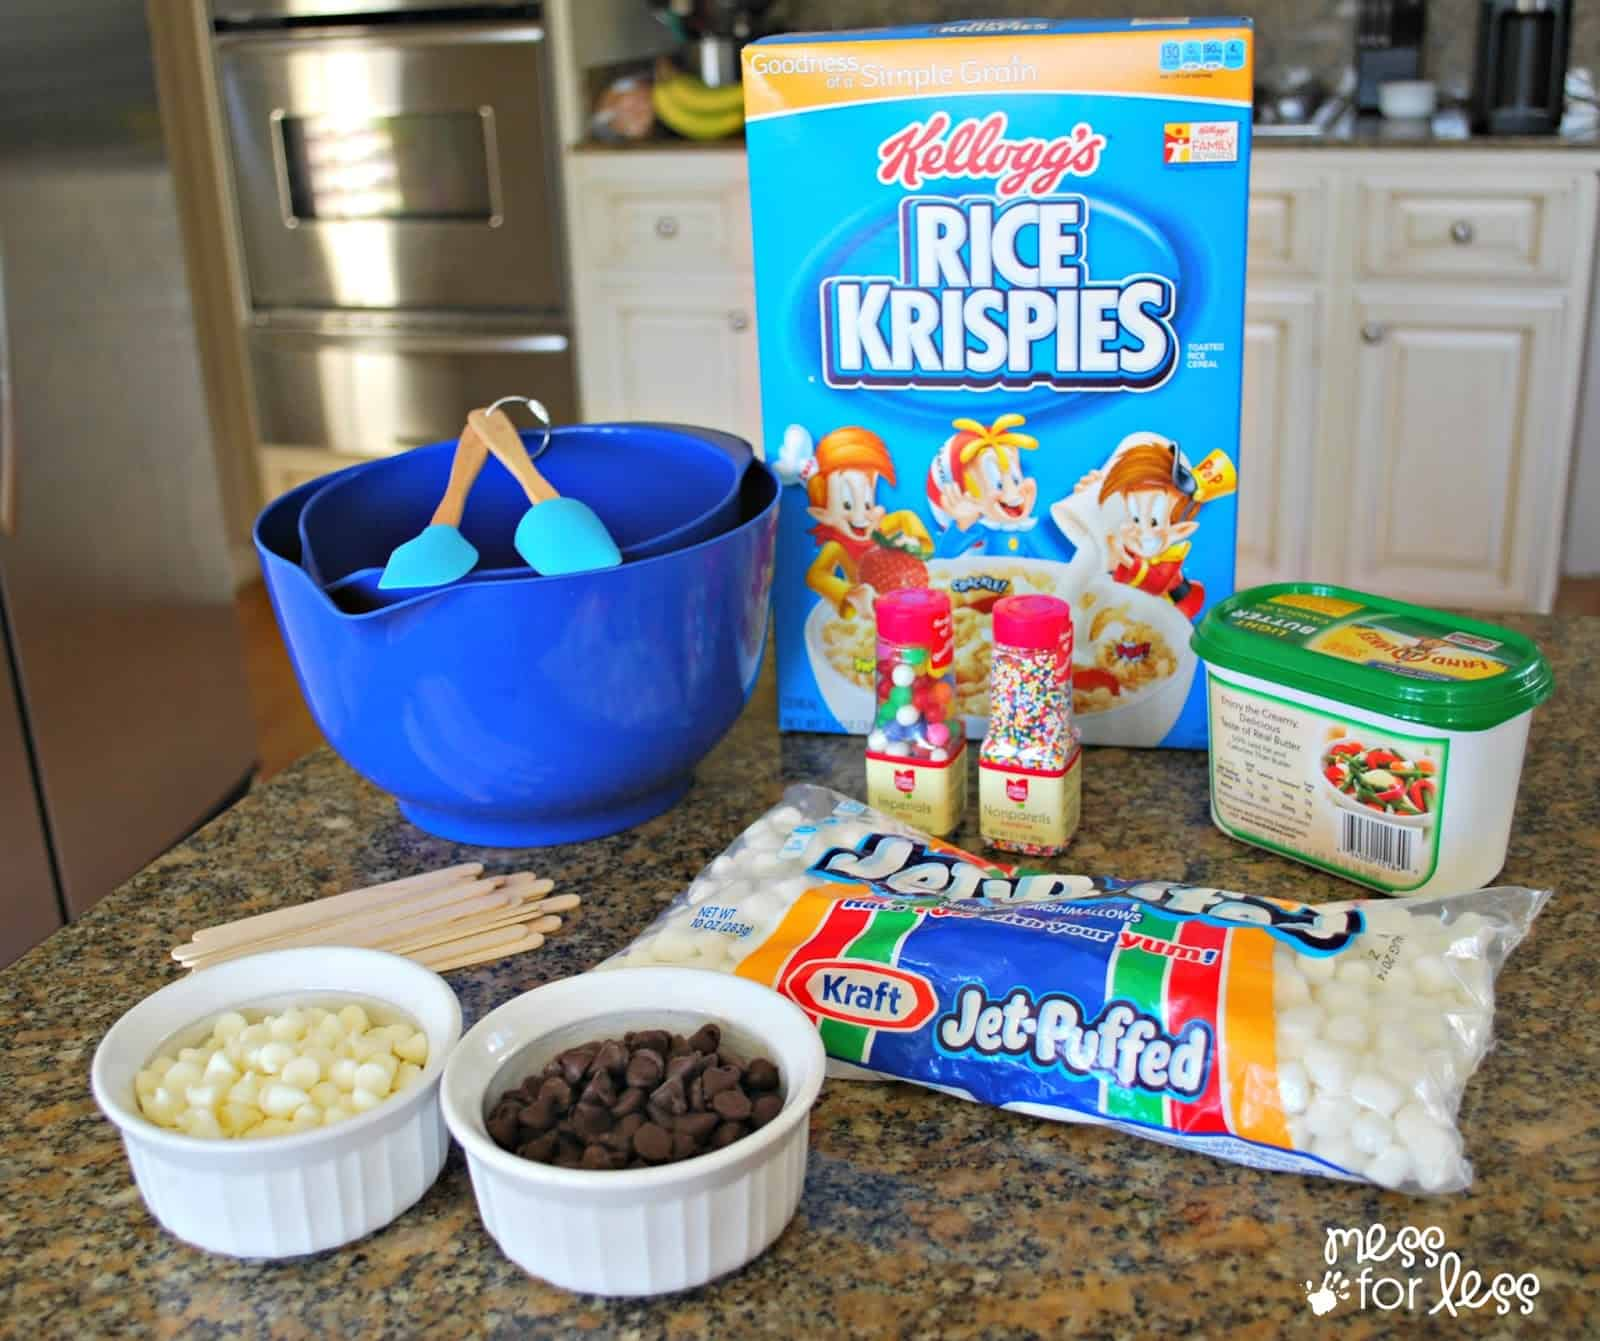 Ingredients for Rice Krispies Treats #ad #Easytomake